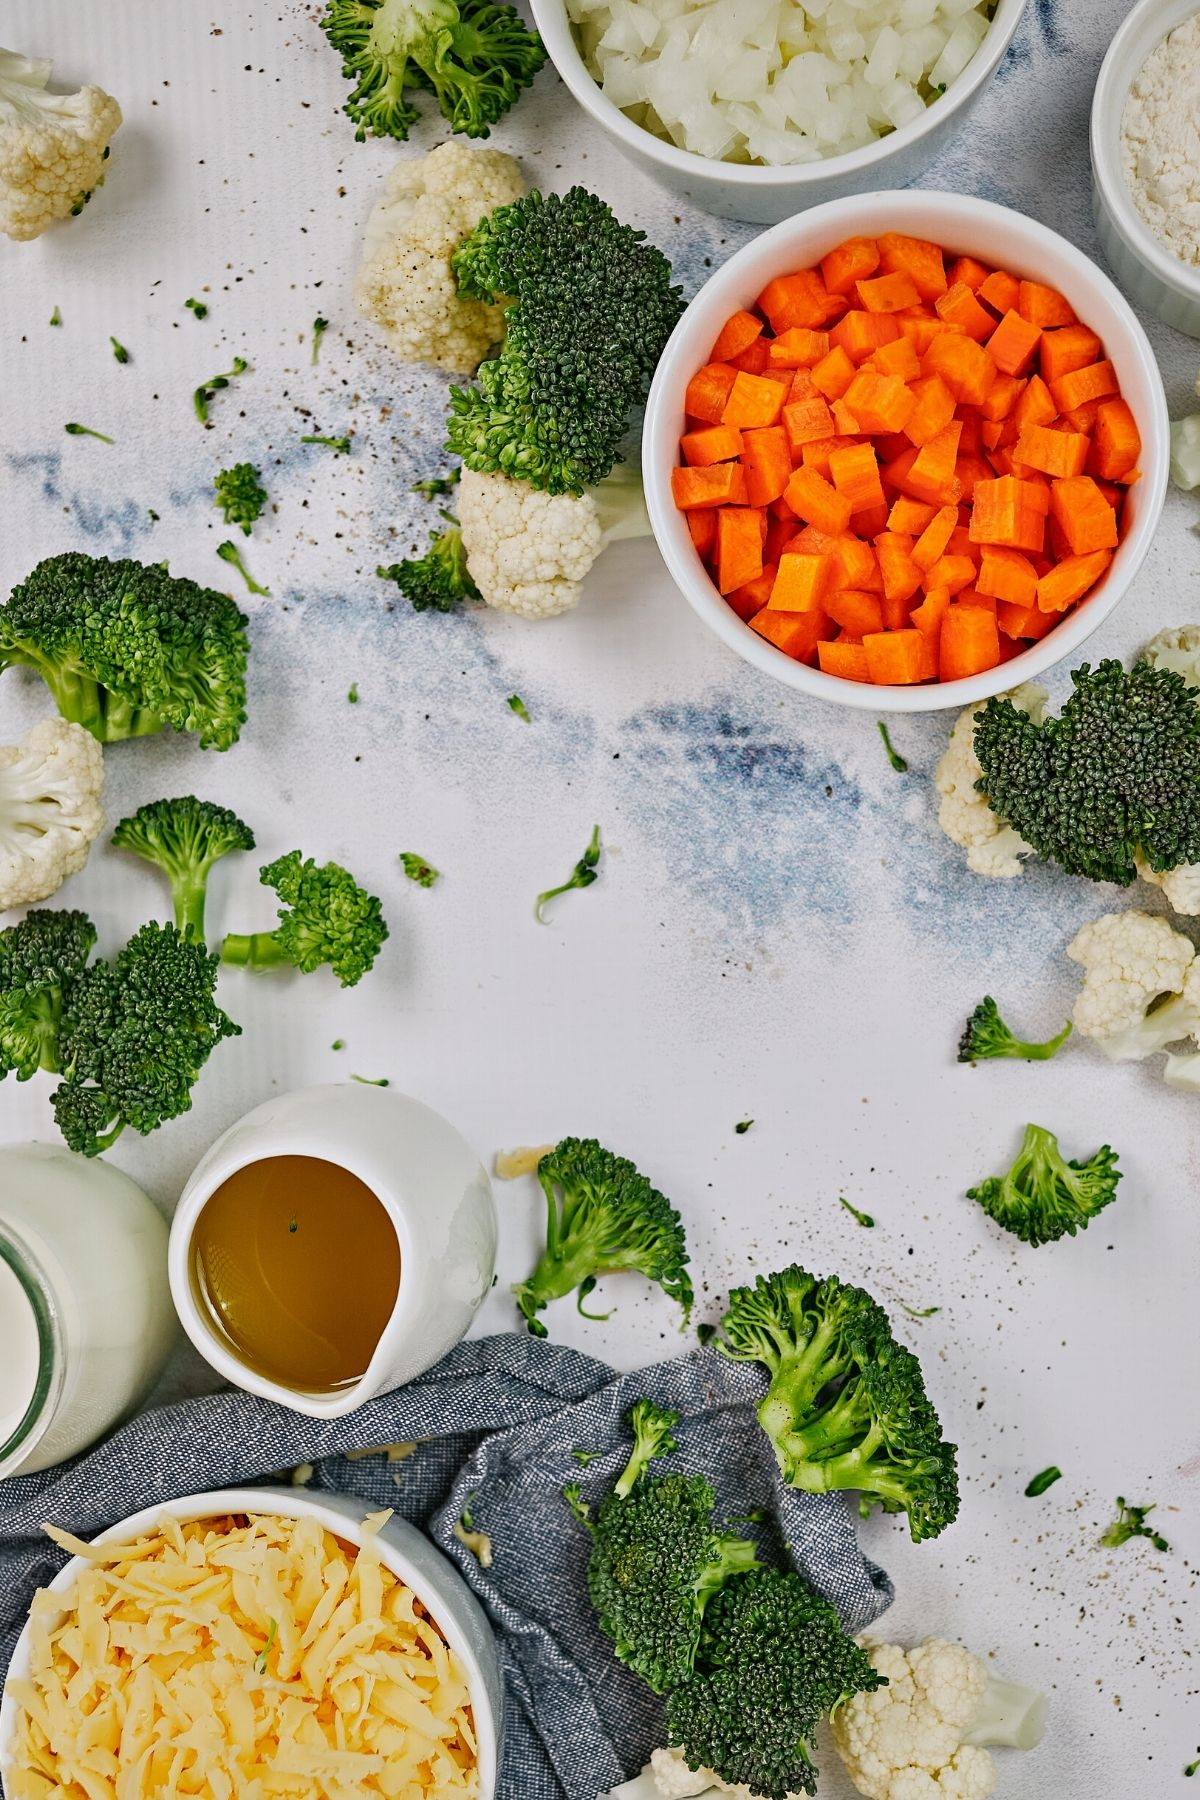 White counter with broccoli carrots and cheese in bowls